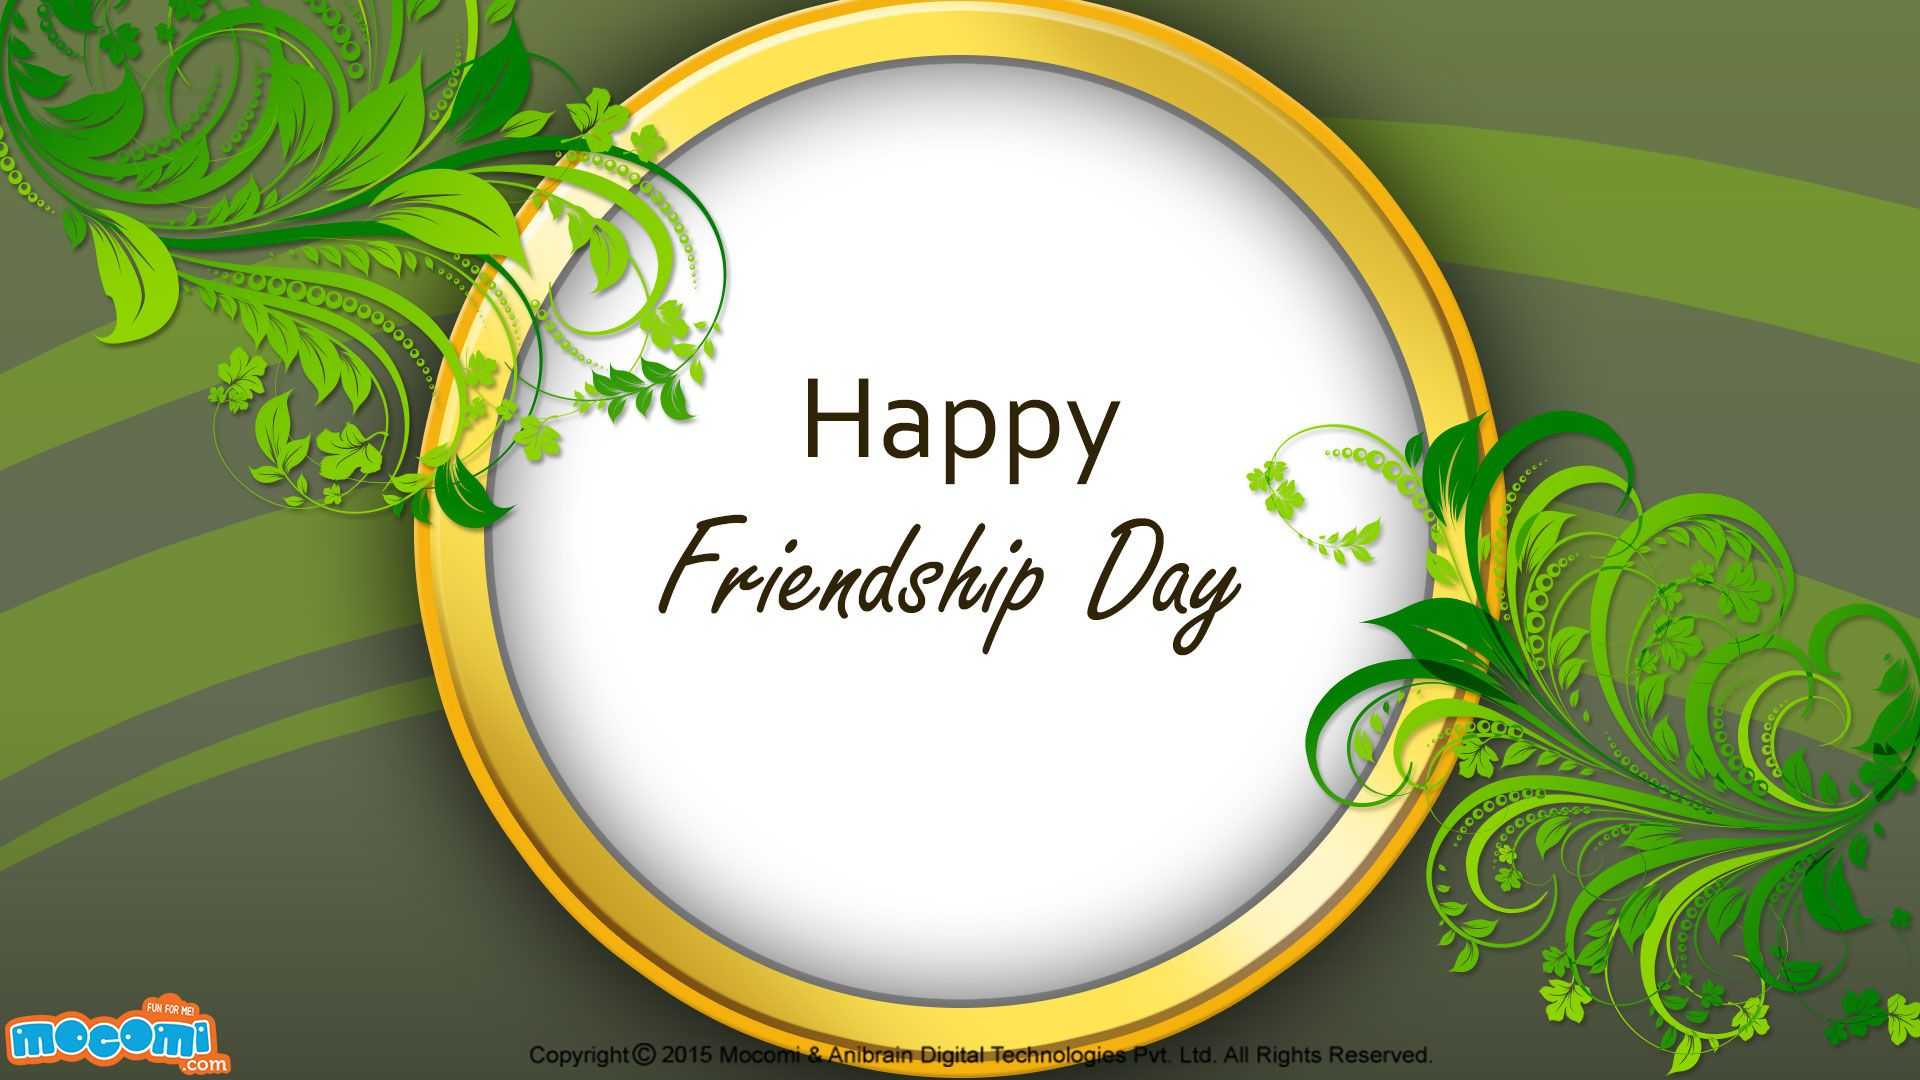 Images friendship day wallpaper hd wallpapers pinterest images friendship day wallpaper hd altavistaventures Images